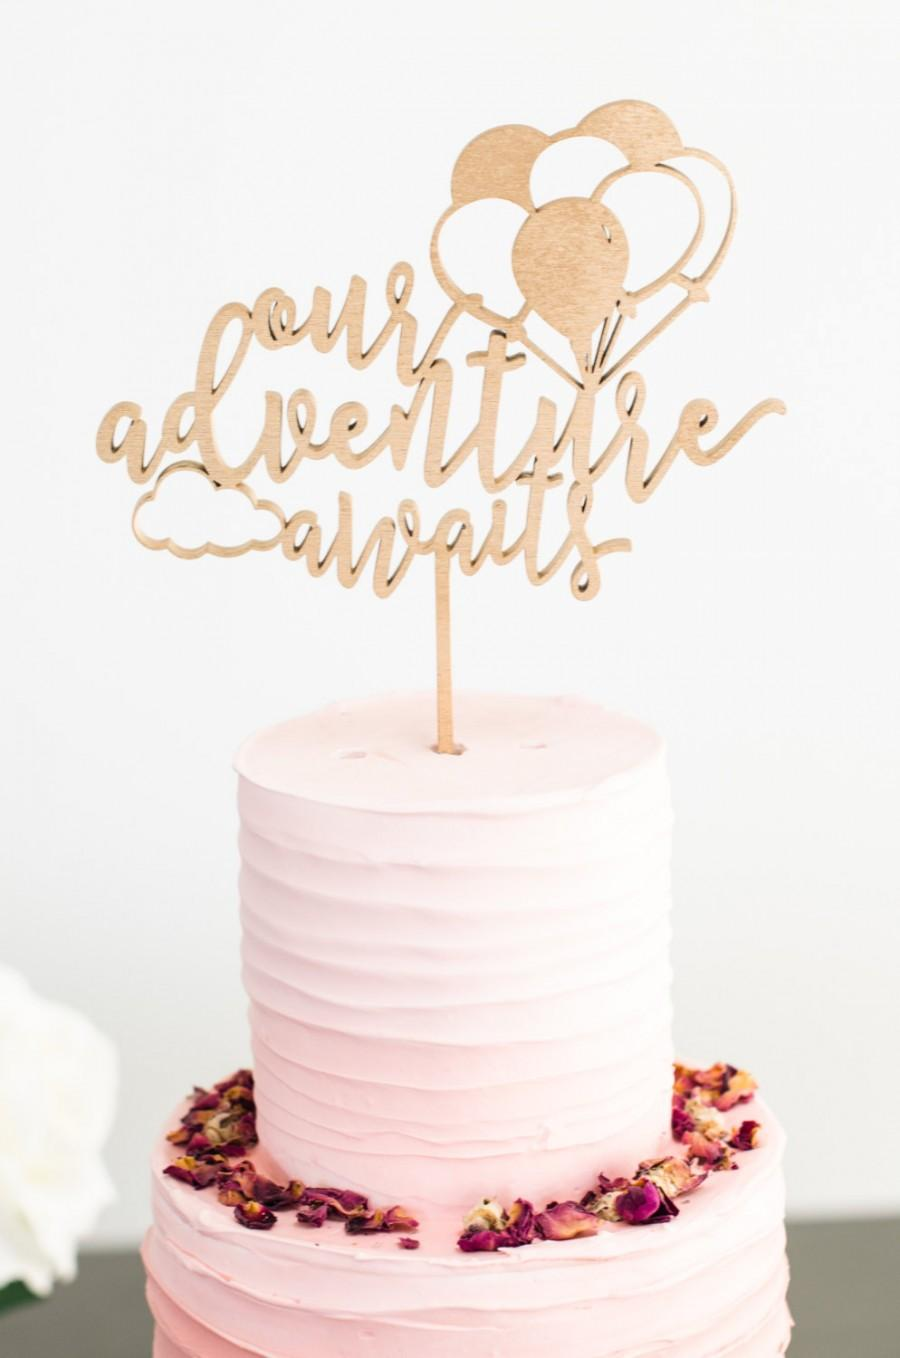 Our Adventure Awaits Gold Cake Topper One 6 Wood Laser Cut Cake